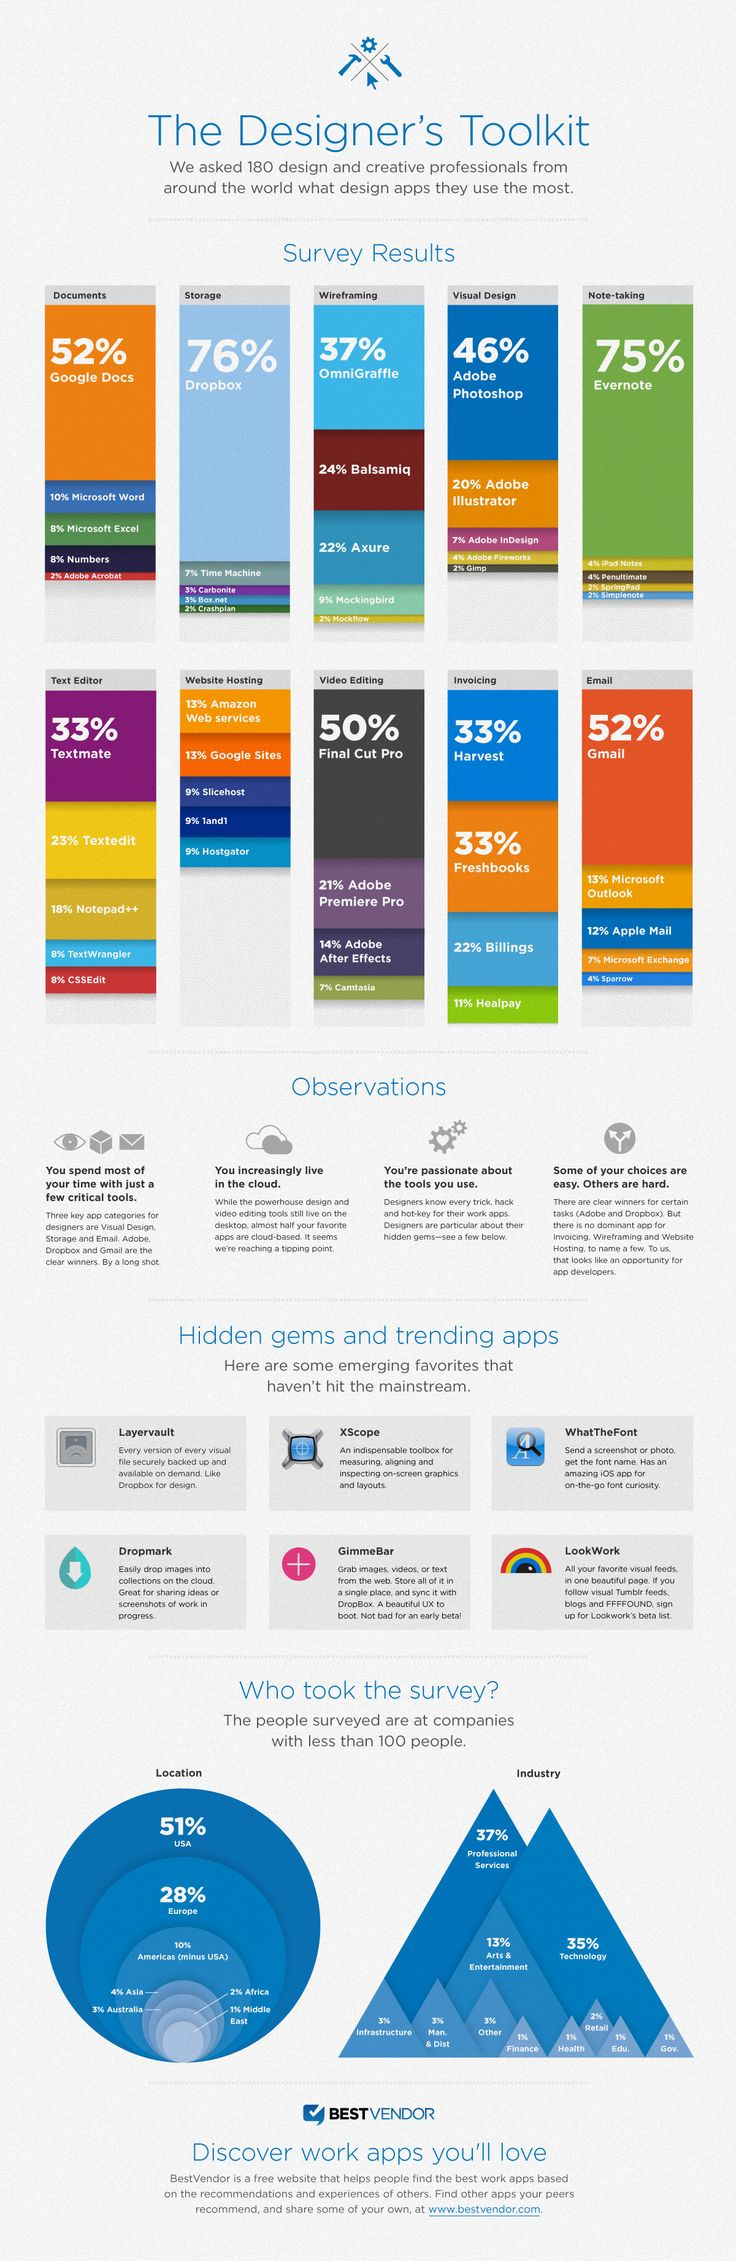 2011 survey, but nice seeing Google Docs/Sites/Gmail on here & Dropmark.